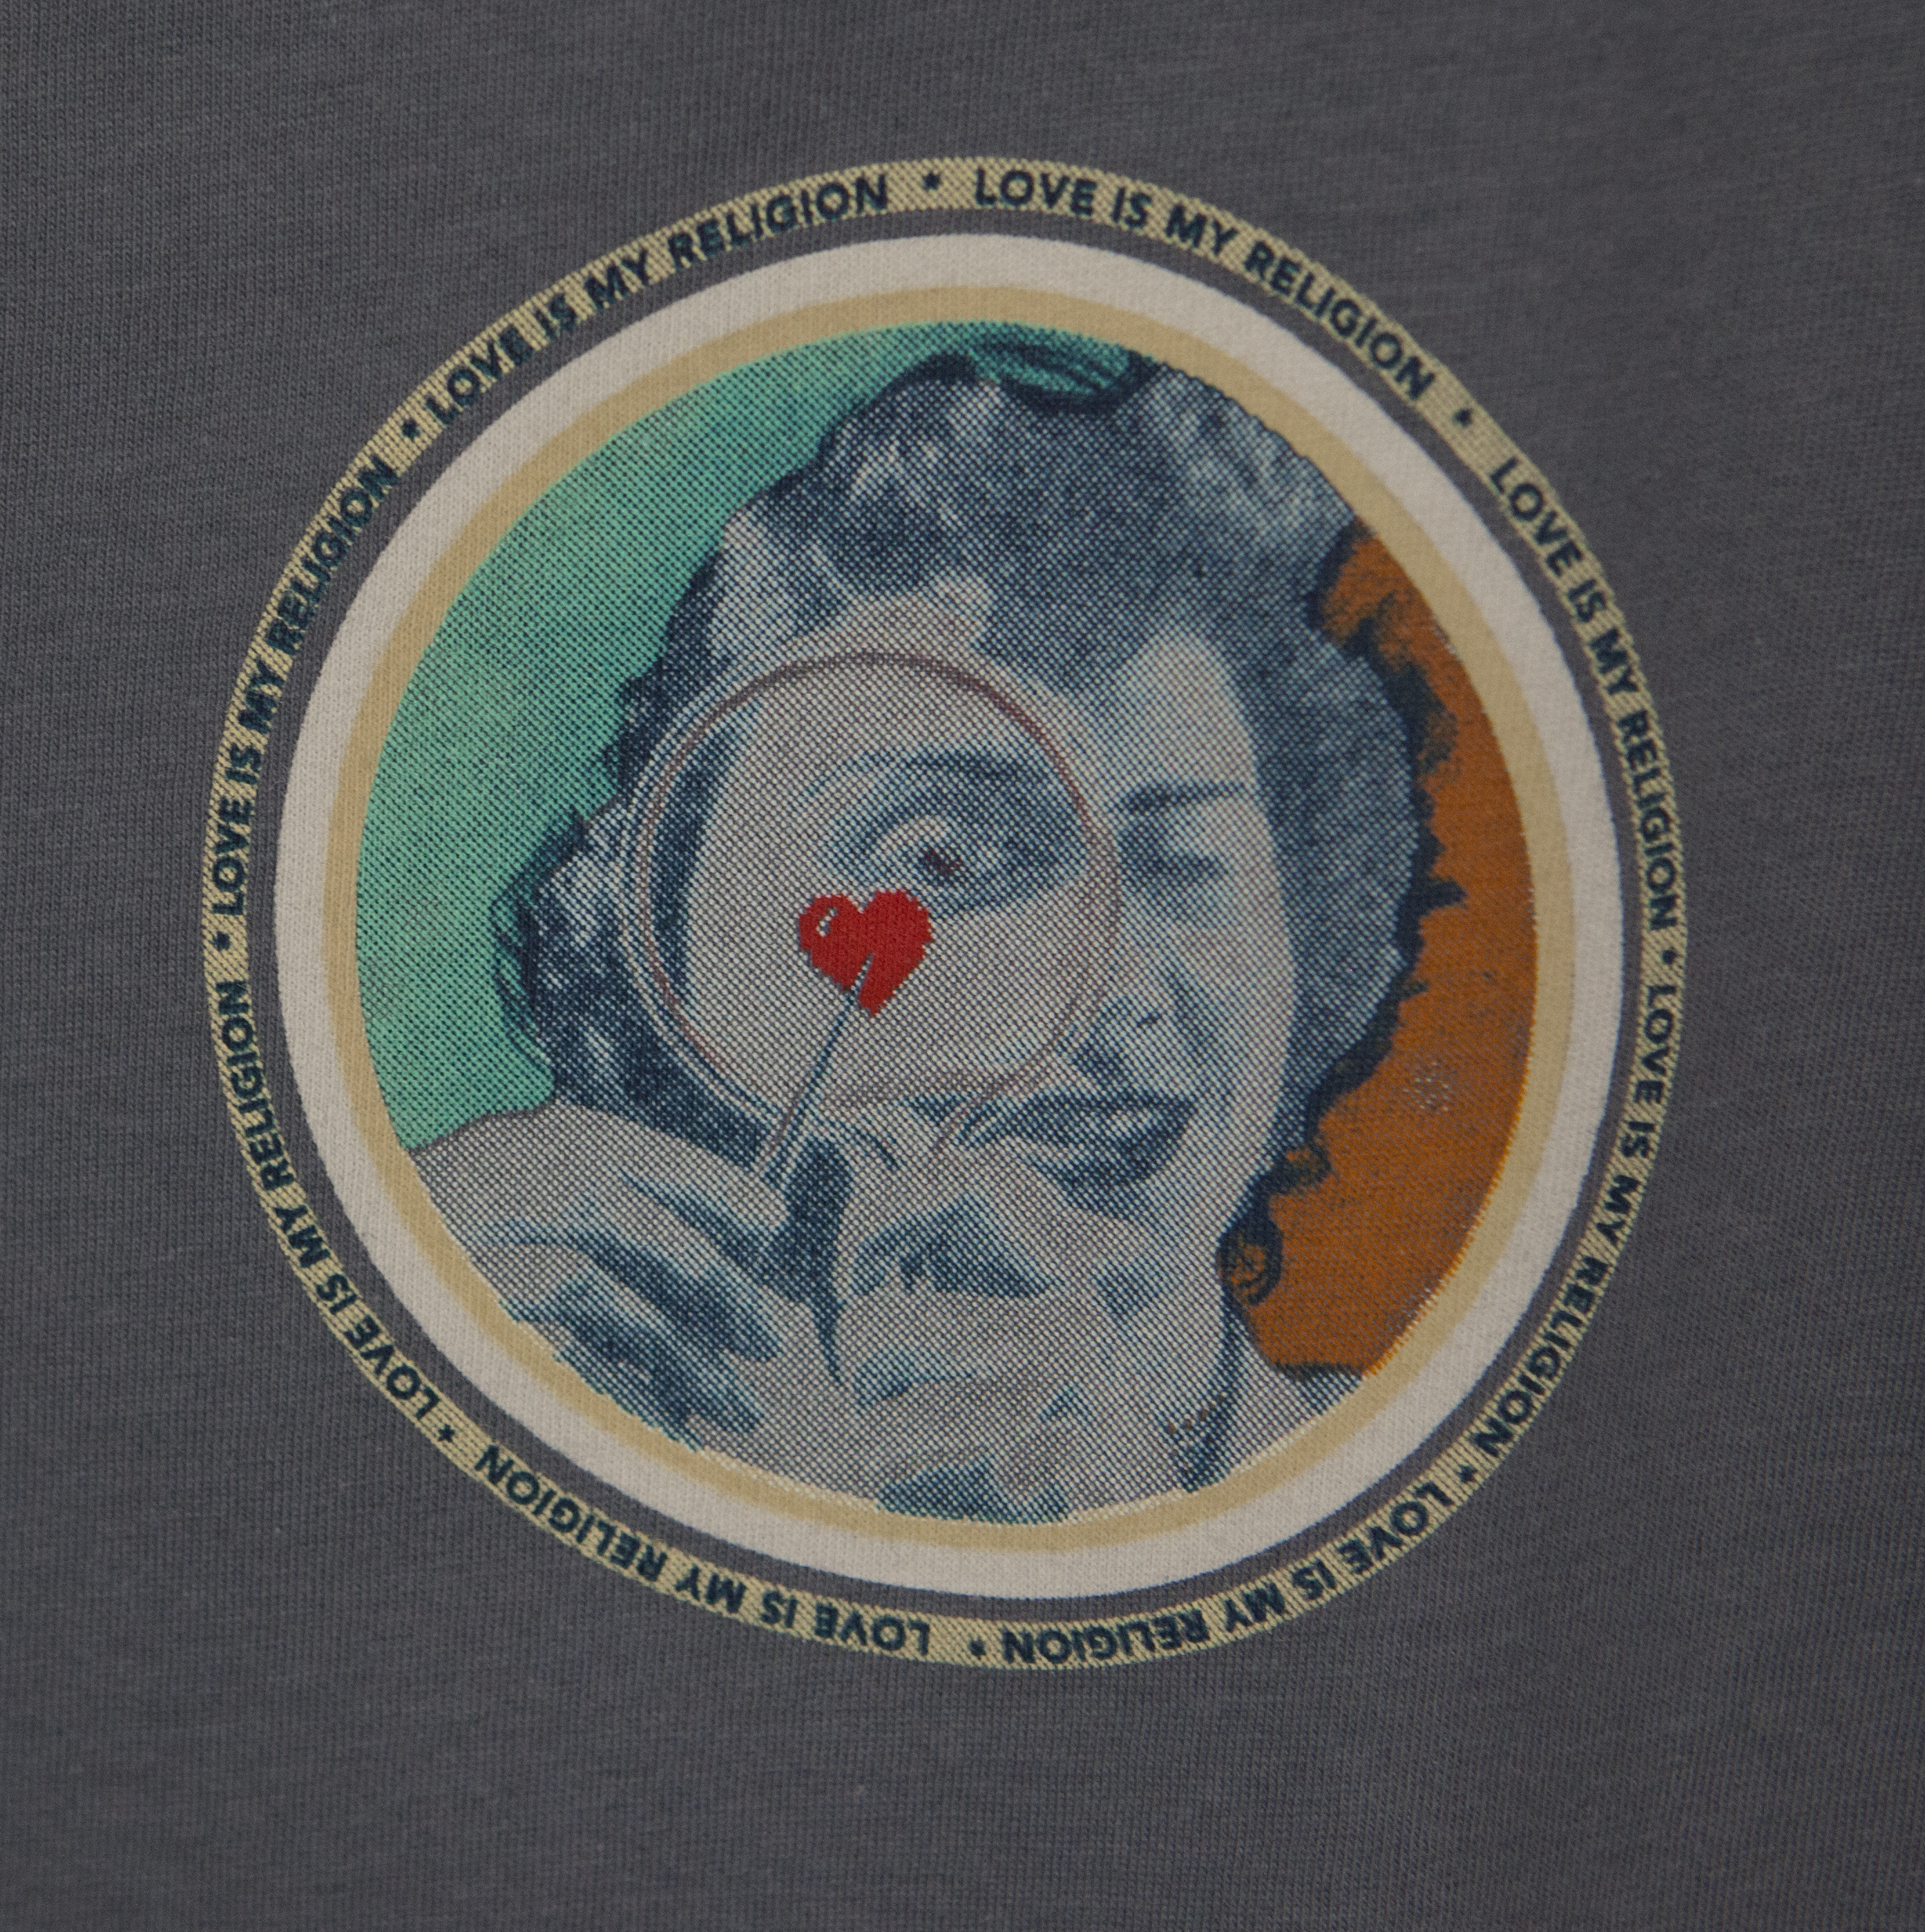 Sammy Slabbinck Heart Print on charcoal 100% organic cotton in discharge print.